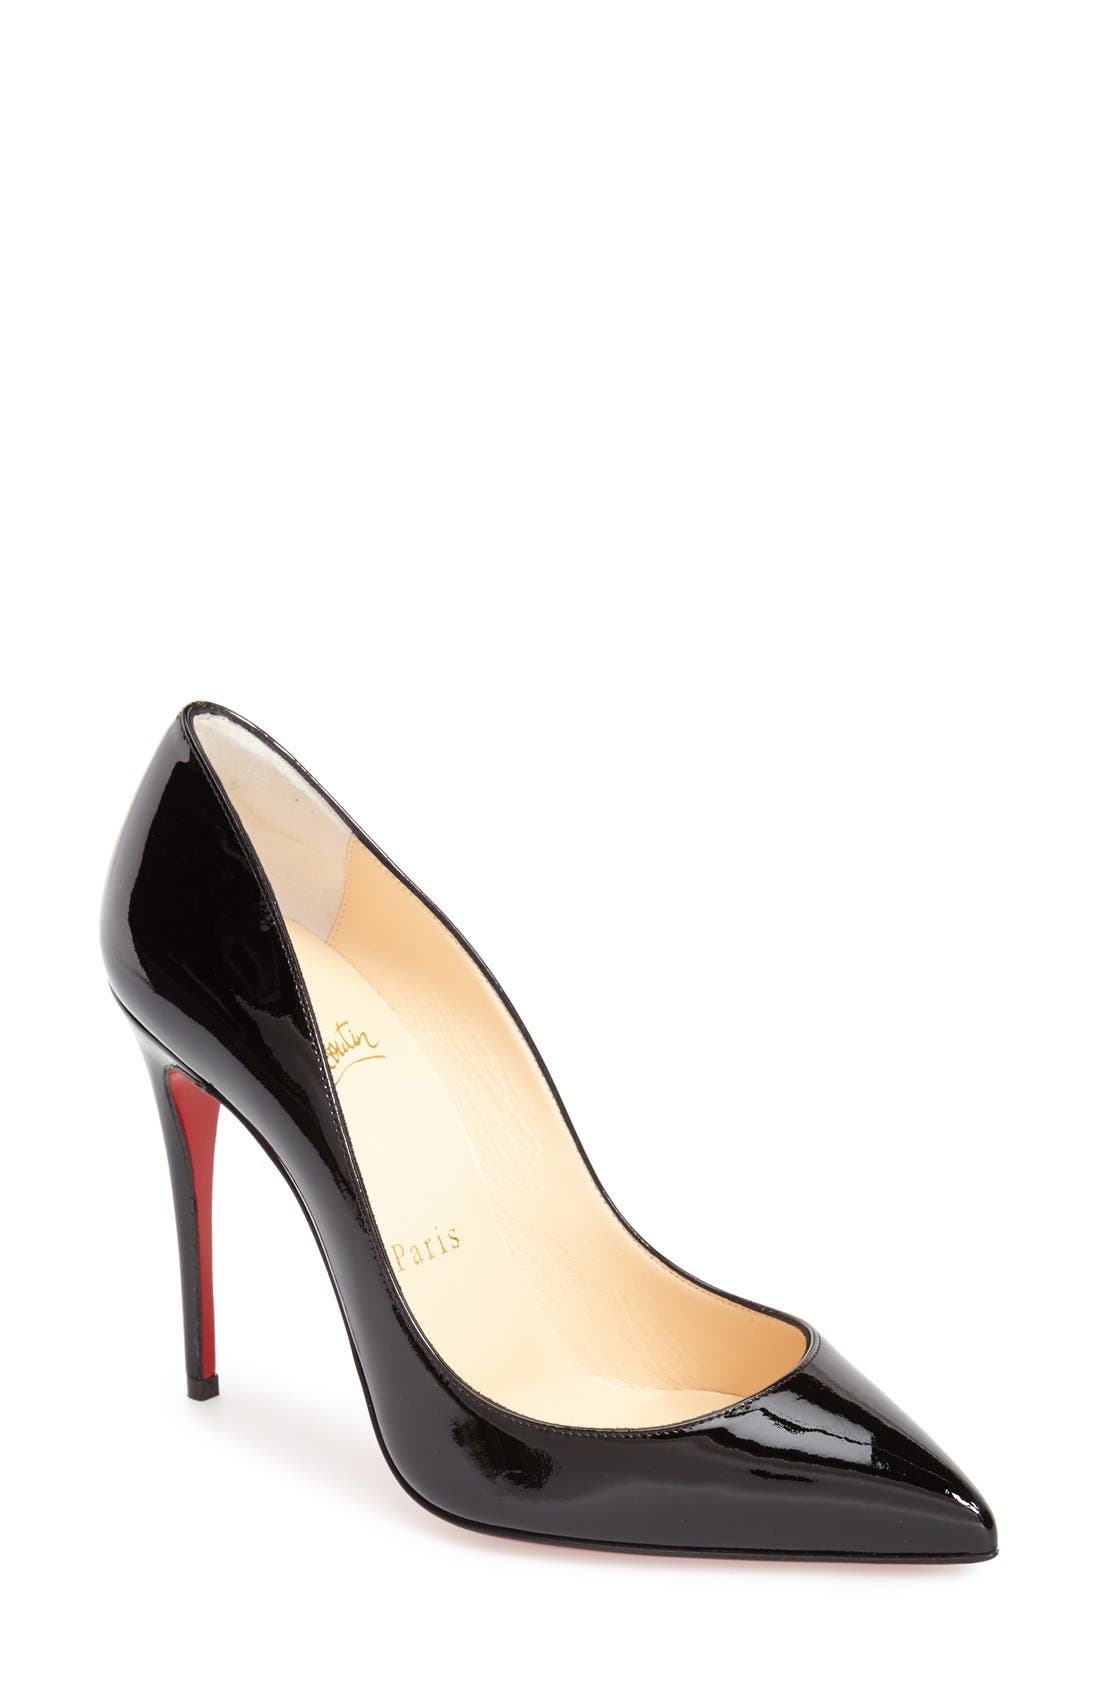 'Pigalle Follies' Pointy Toe Pump,                         Main,                         color, Black Patent